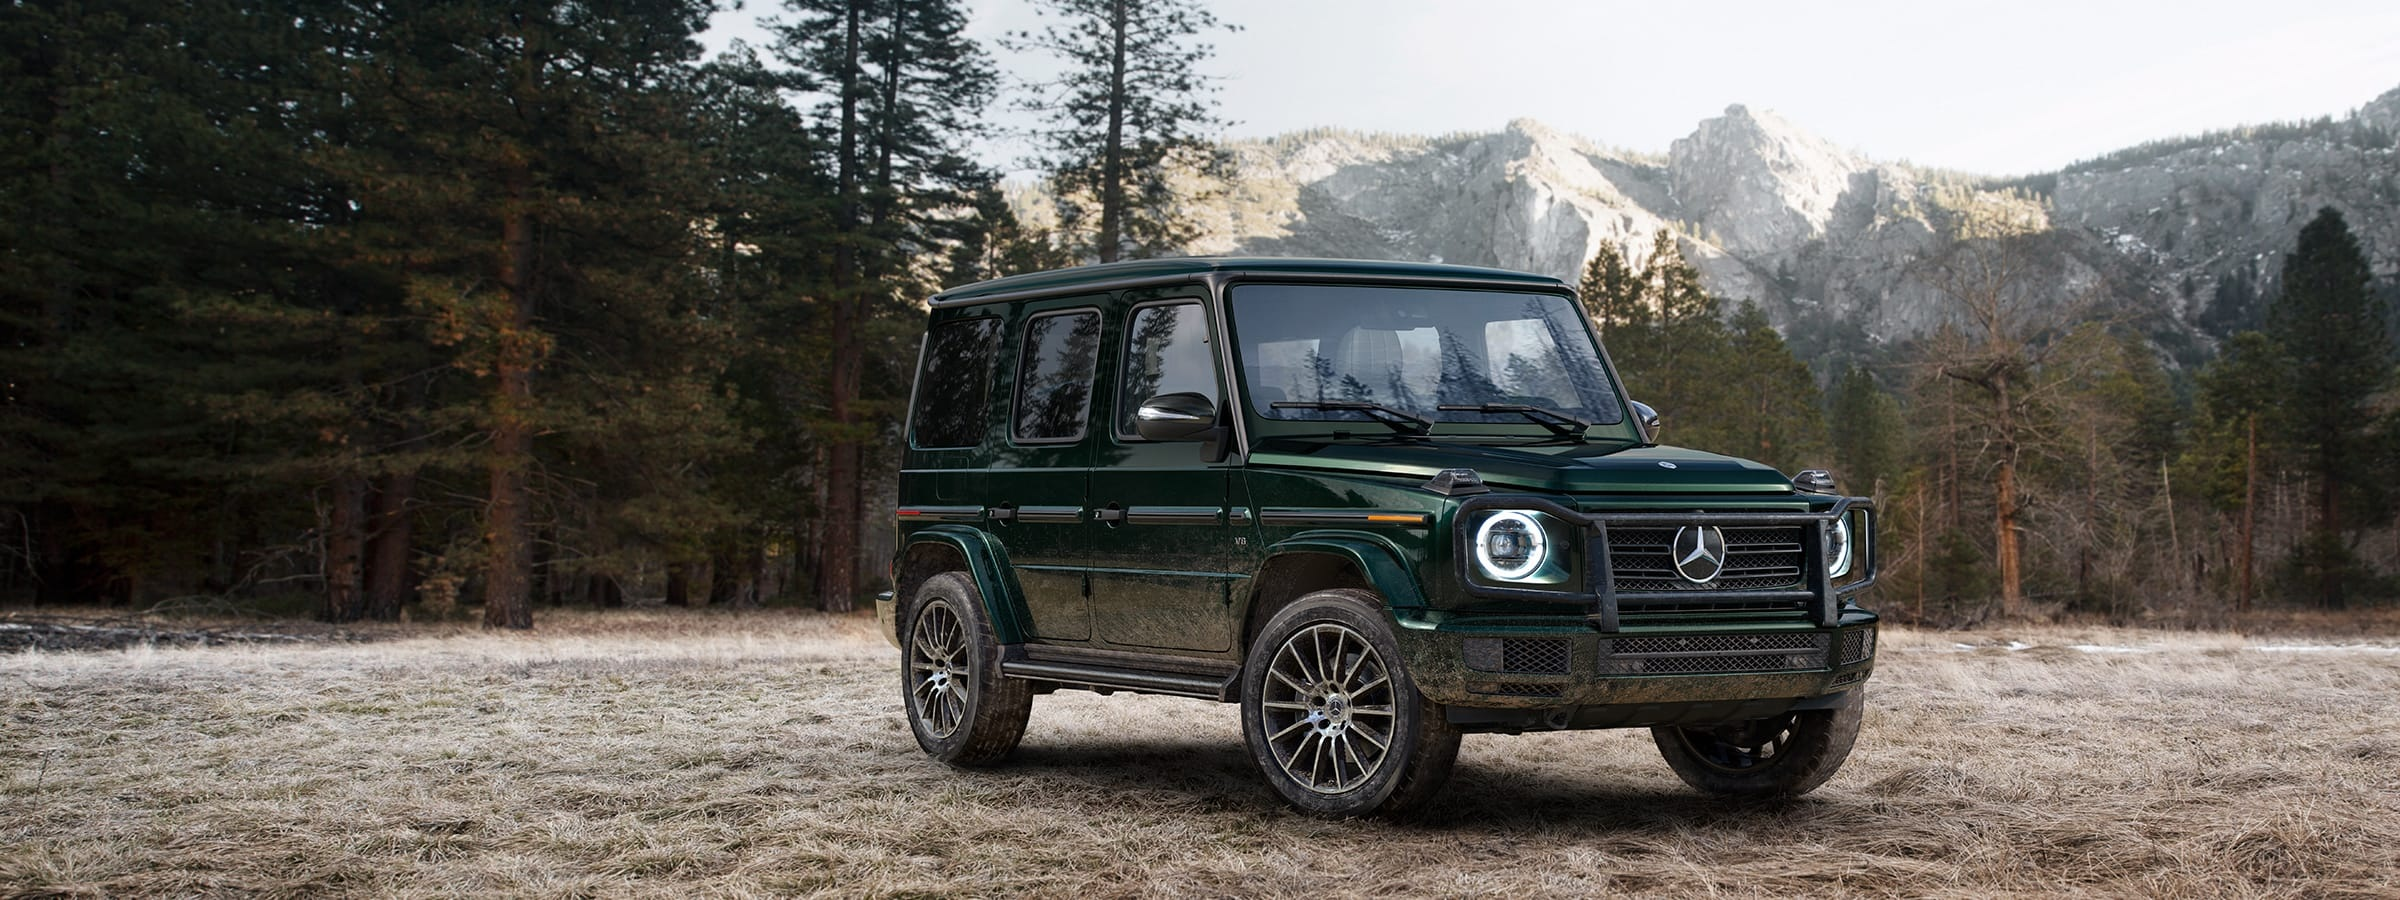 a Mercedes-Benz G-Class Wagen SUV parked in a clearing in the mountains.